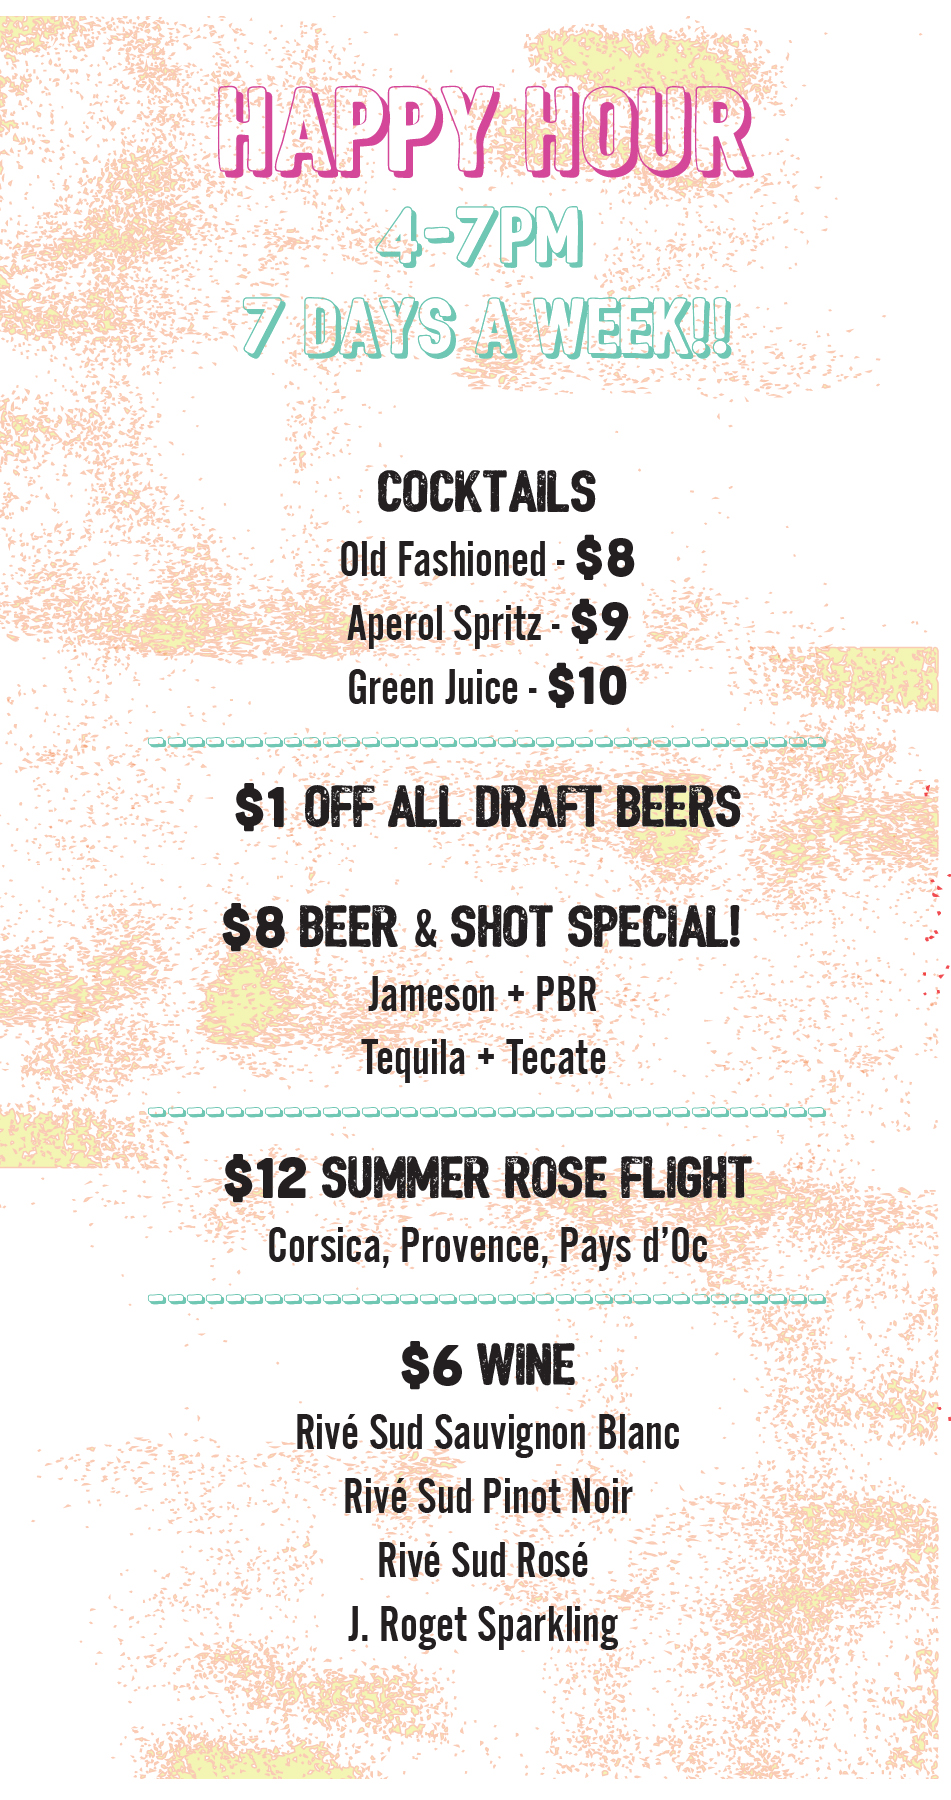 happy hour menu.jpg